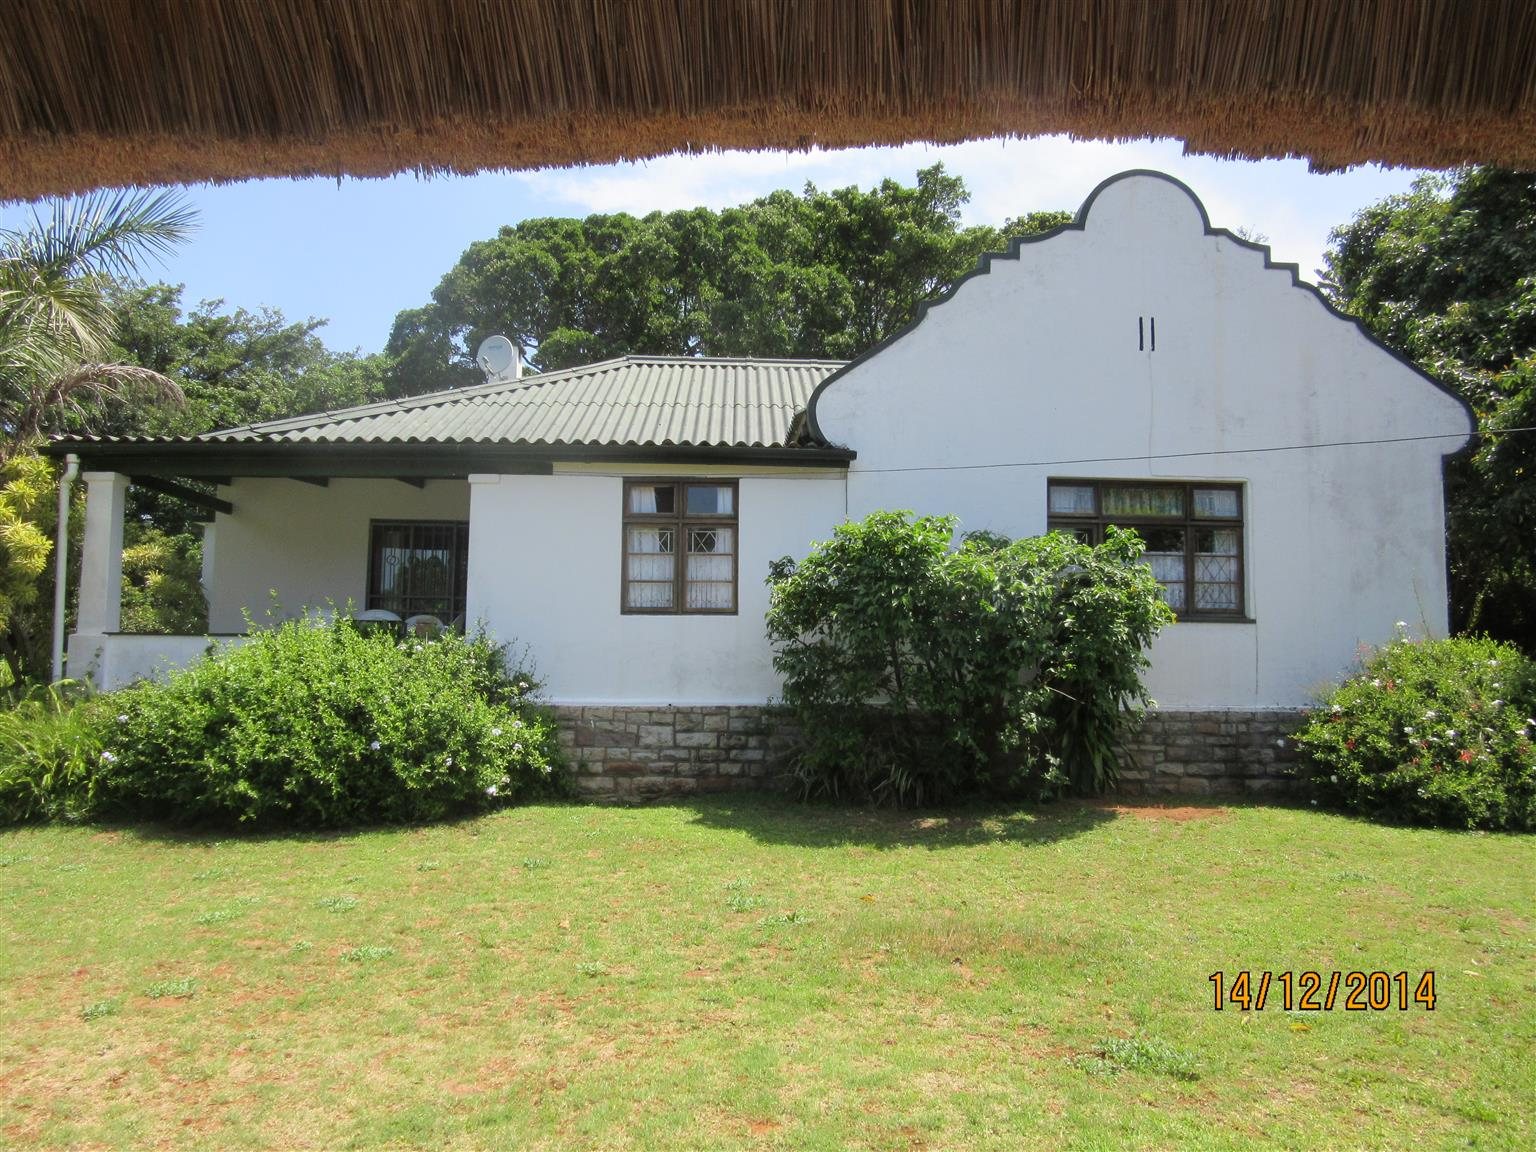 FULLY TENANTED DUTCH GABLE 4 BEDROOM HOUSE FOR SALE PLUS SEPARATE ONE BEDROOM COTTAGE UMTENTWENI R990,000